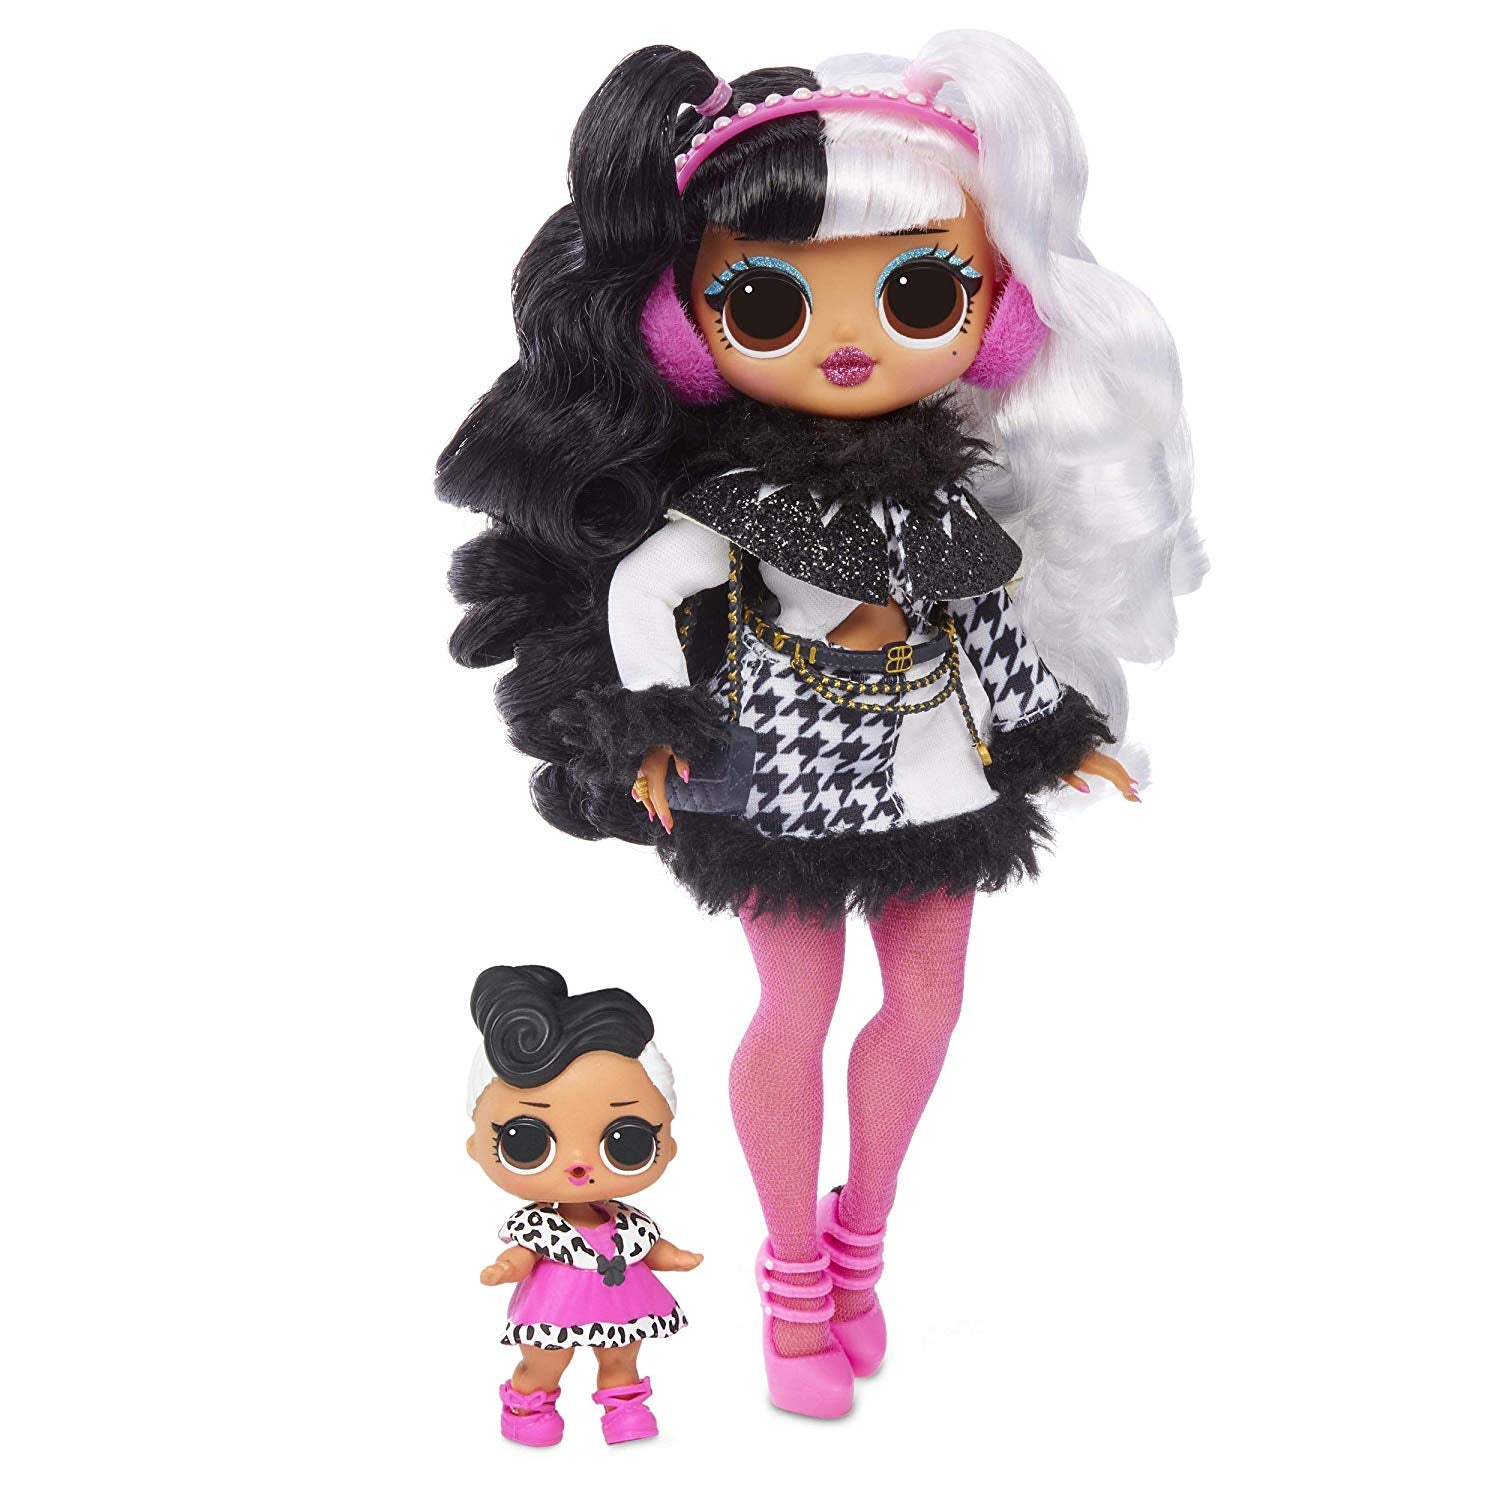 L.O.L. Surprise! O.M.G. Winter Disco Dollie Fashion Doll & Sister Girls Toys